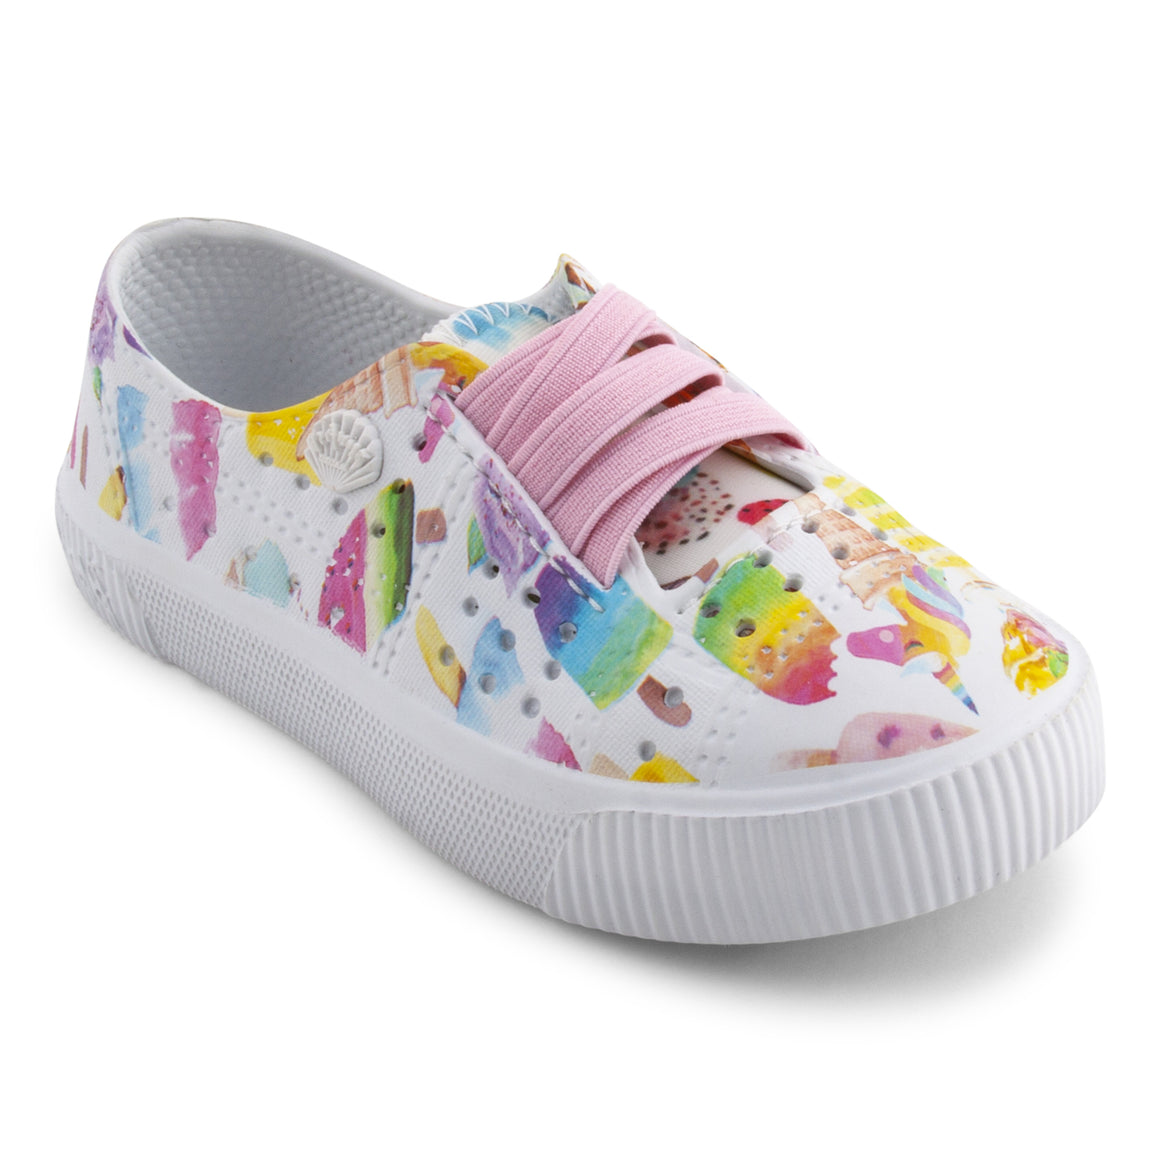 Blowfish Toddler's Rioo-T Slip On Shoe Off White Unicorn